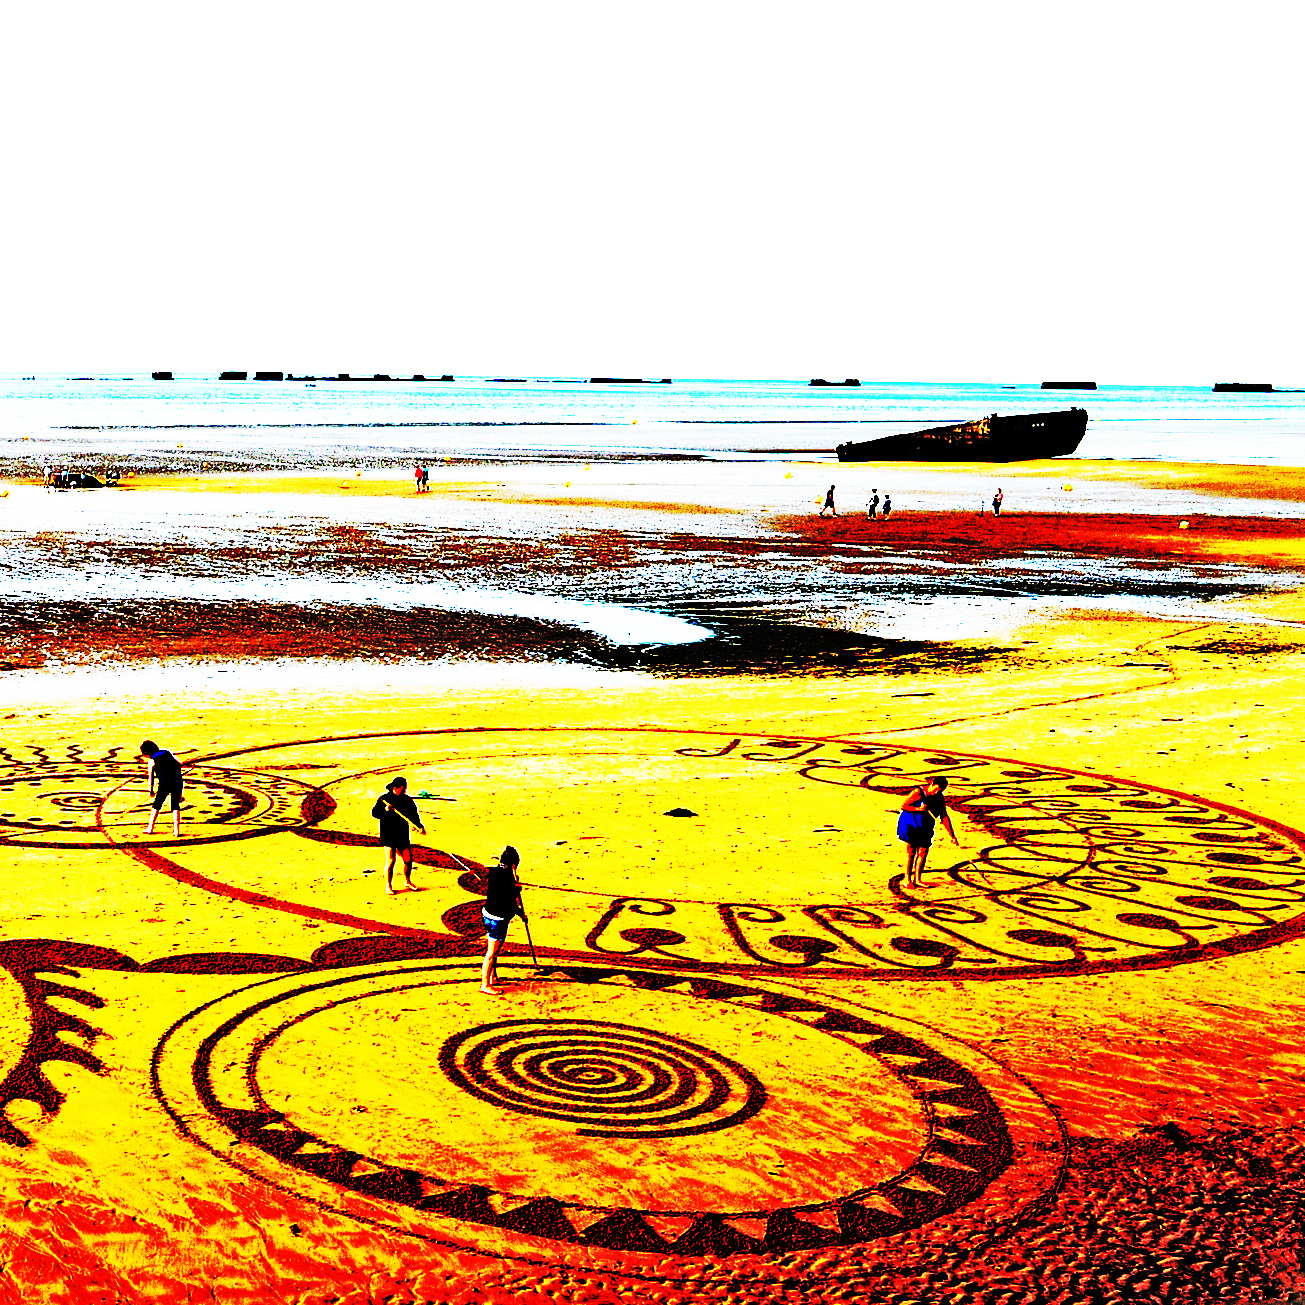 Cancale 1